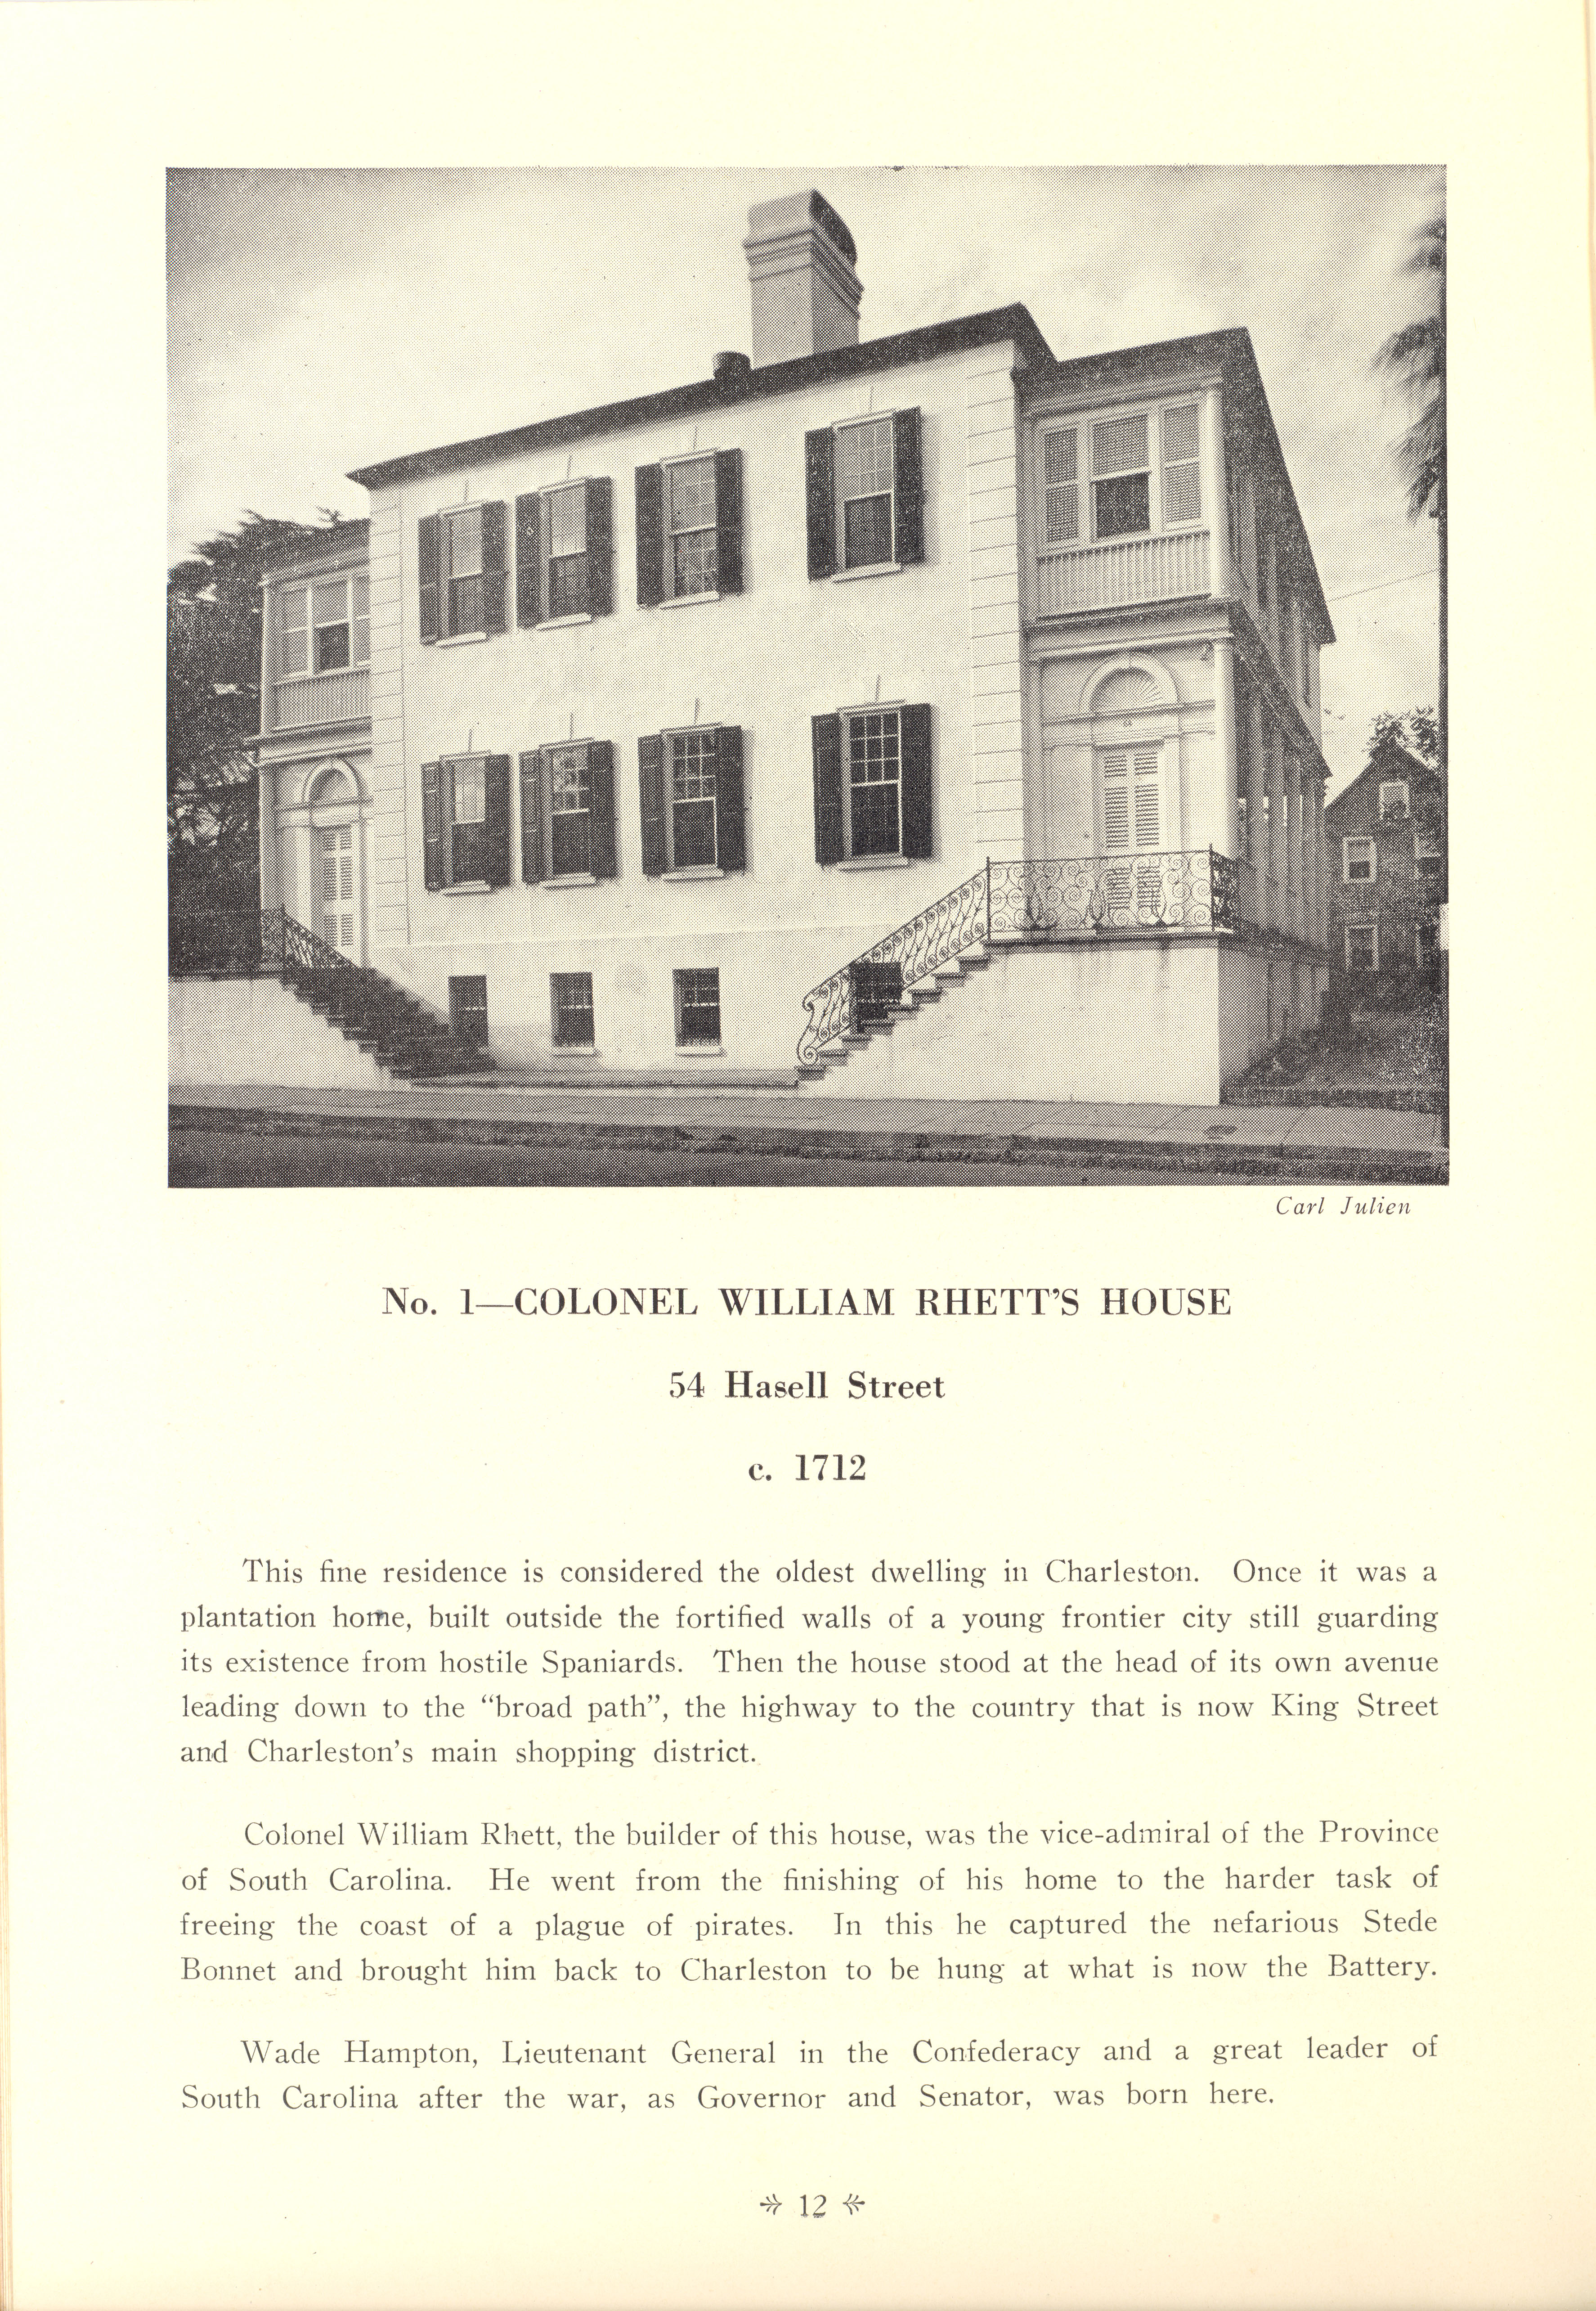 Page 12:  No. 1 - Colonel William Rhett's House, 54 Hasell Street, c. 1712